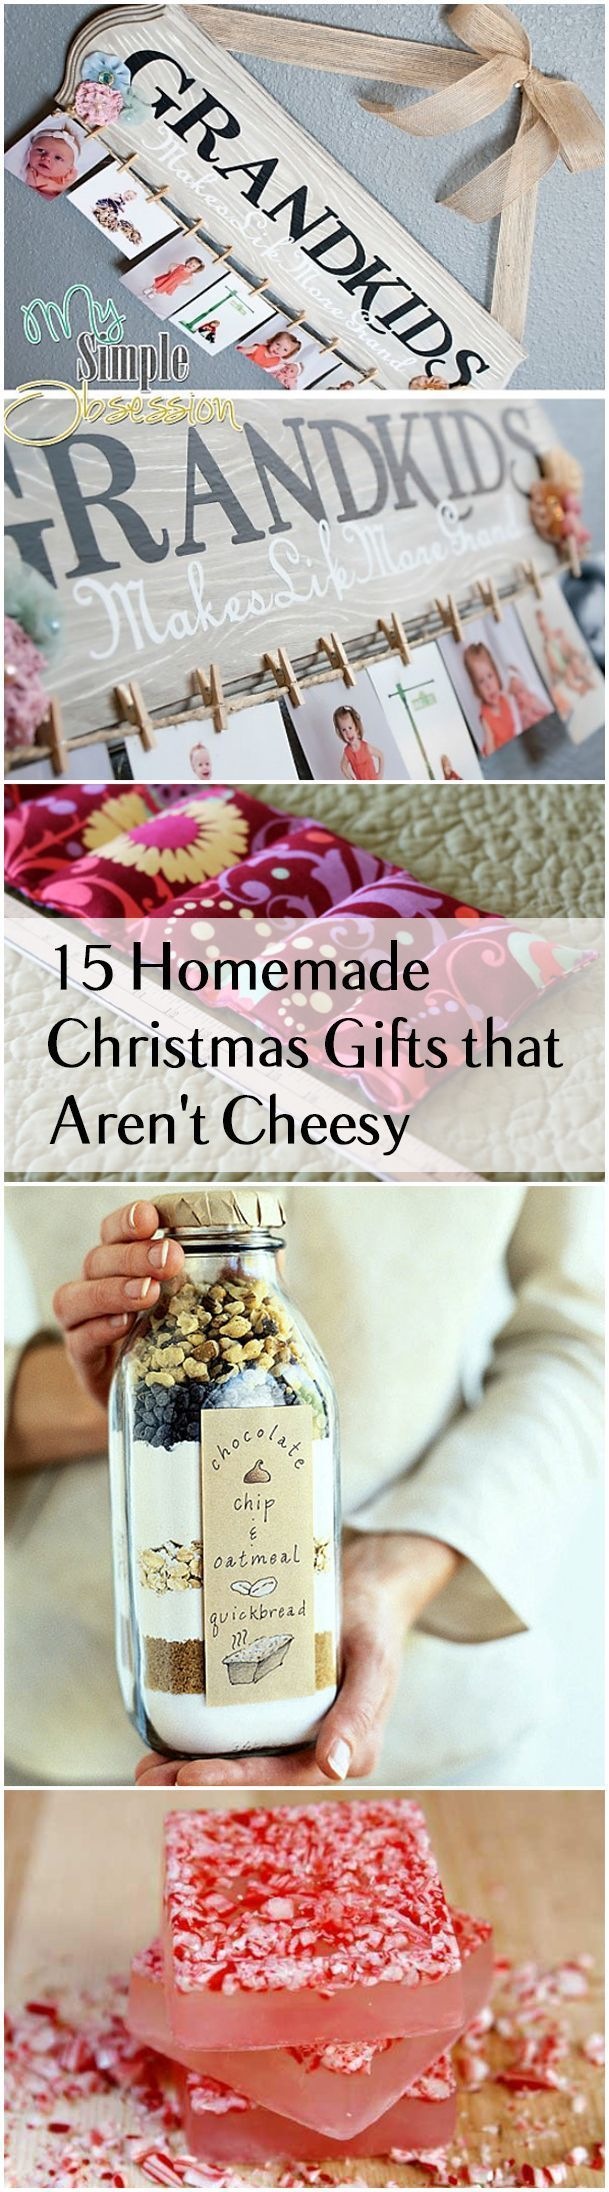 15 Homemade Christmas Gifts That Aren\'t Cheesy | Holiday ...